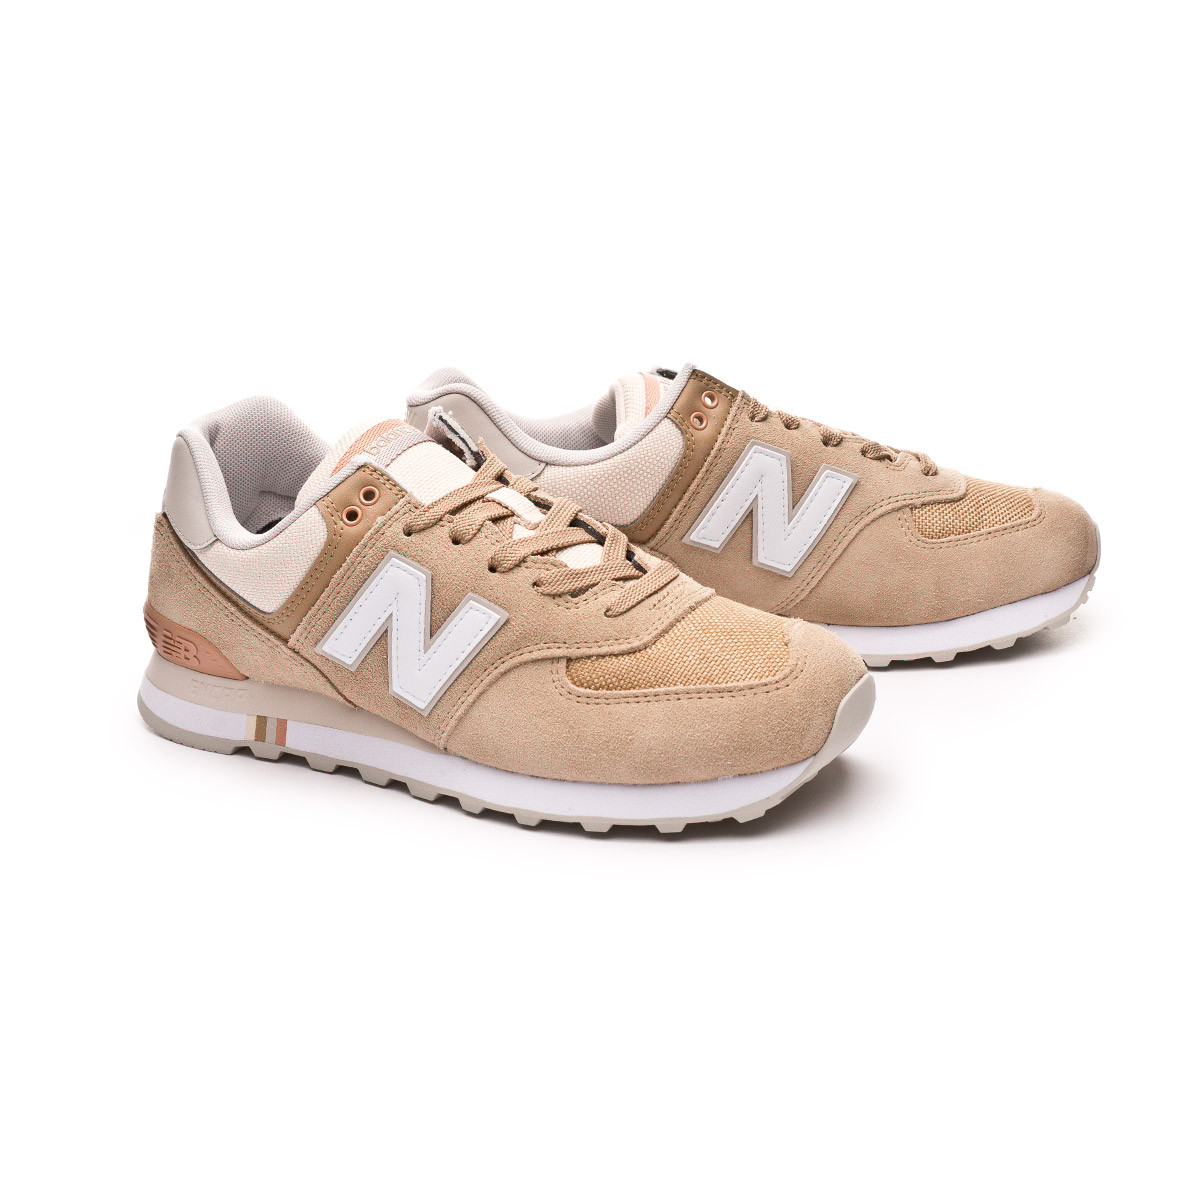 ce63b4981 Trainers New Balance 574 Hemp - Football store Fútbol Emotion